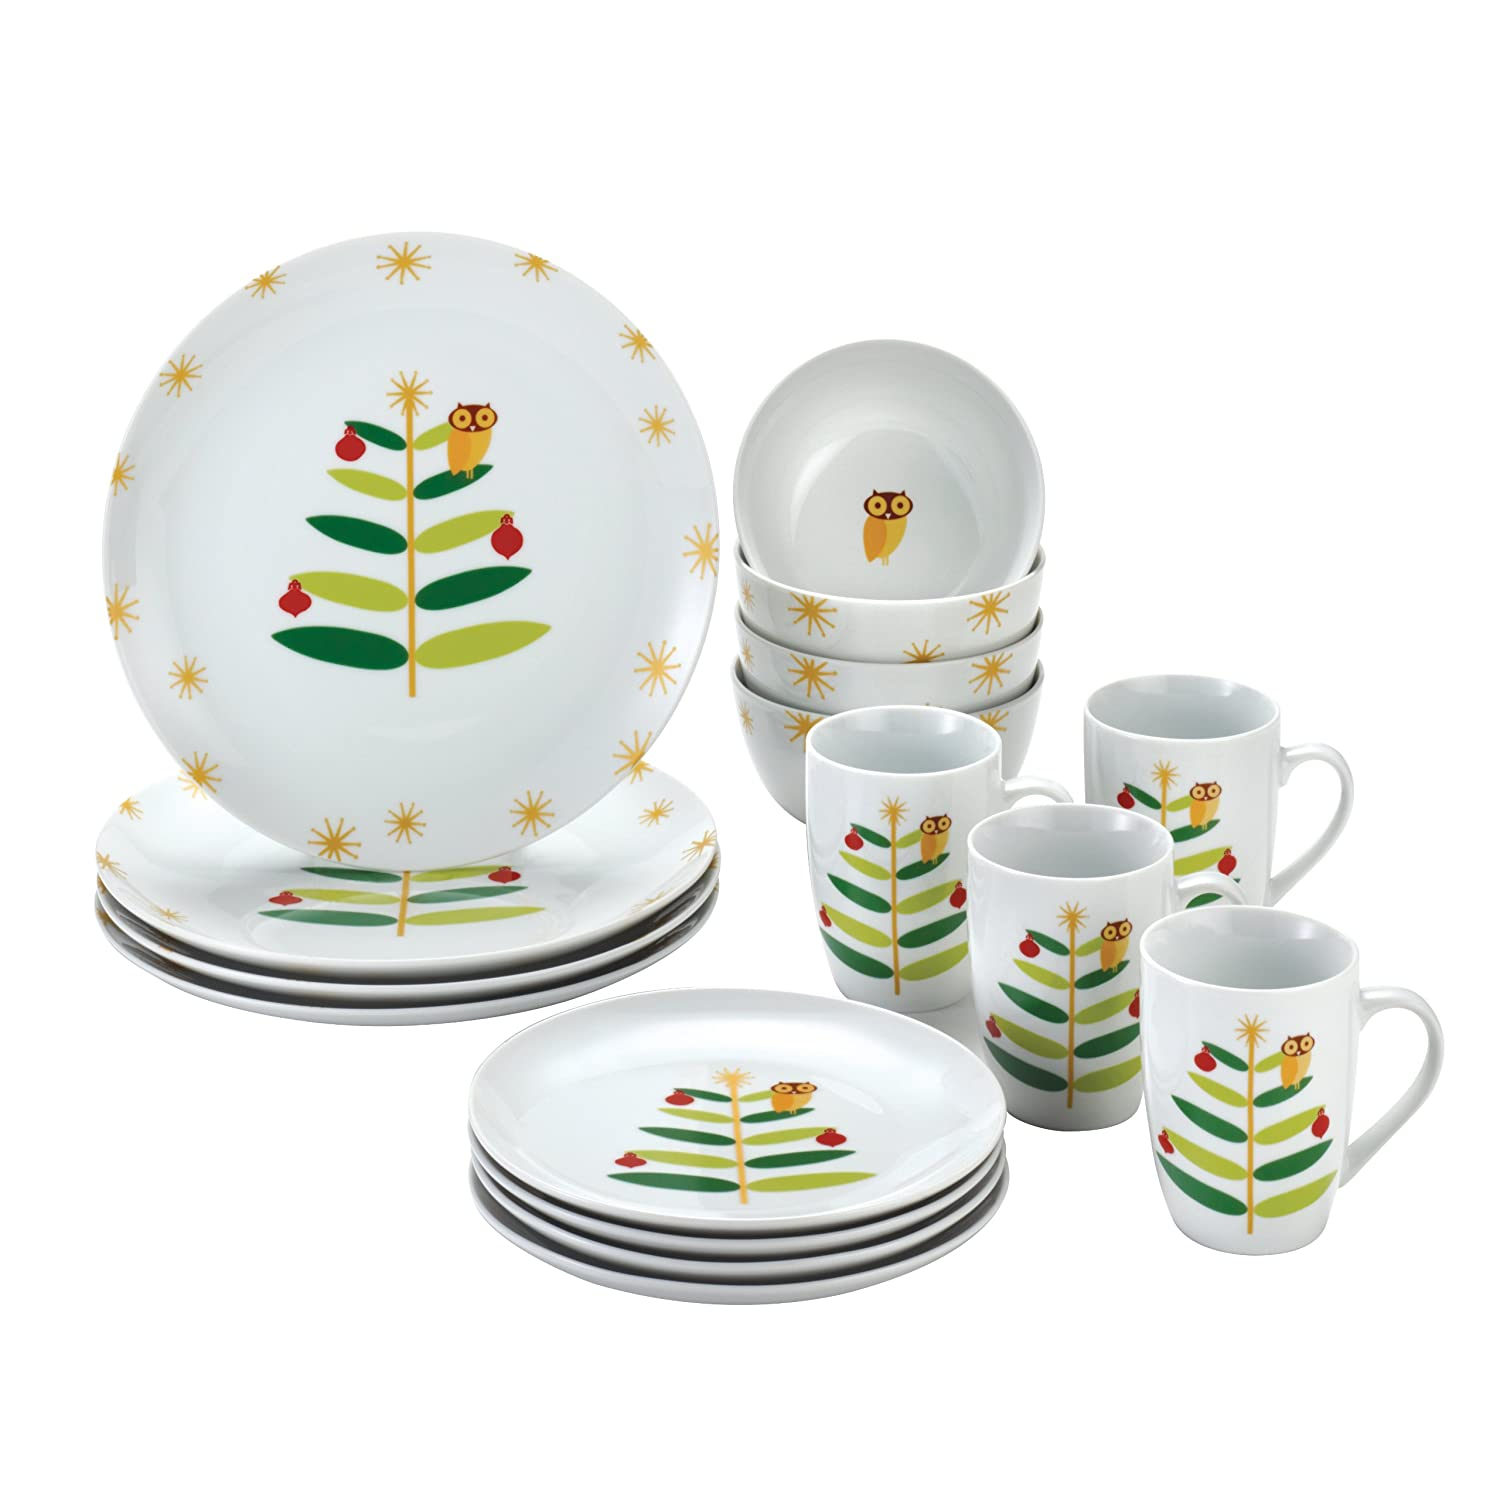 Owl Dinnerware That Will Make You Smile WebNuggetzcom